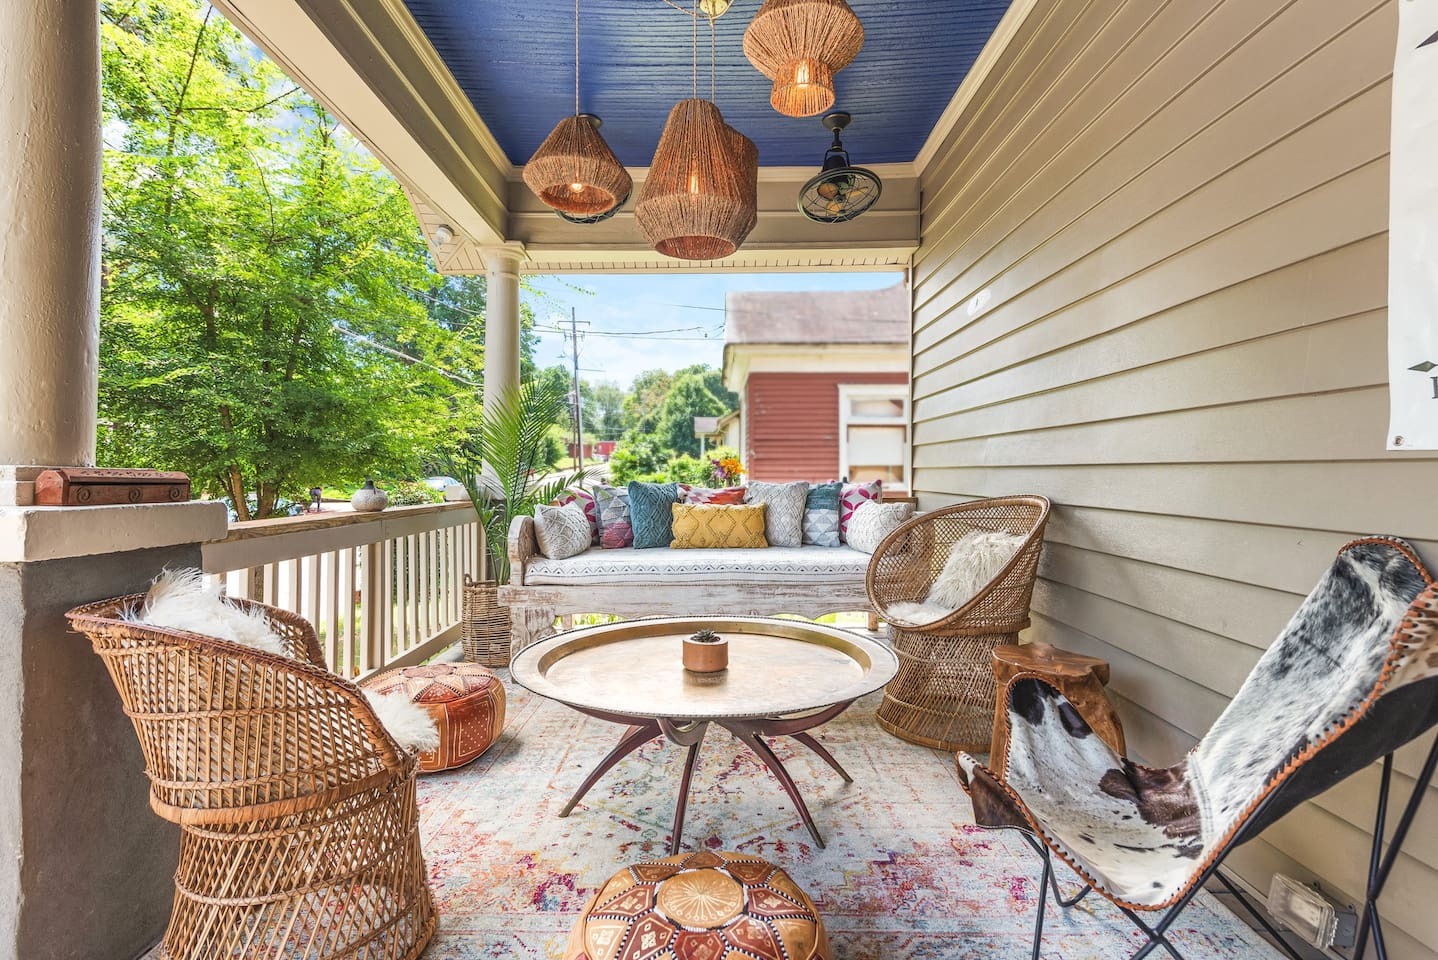 Escape to Northern Africa on our newly renovated and designed front porch!